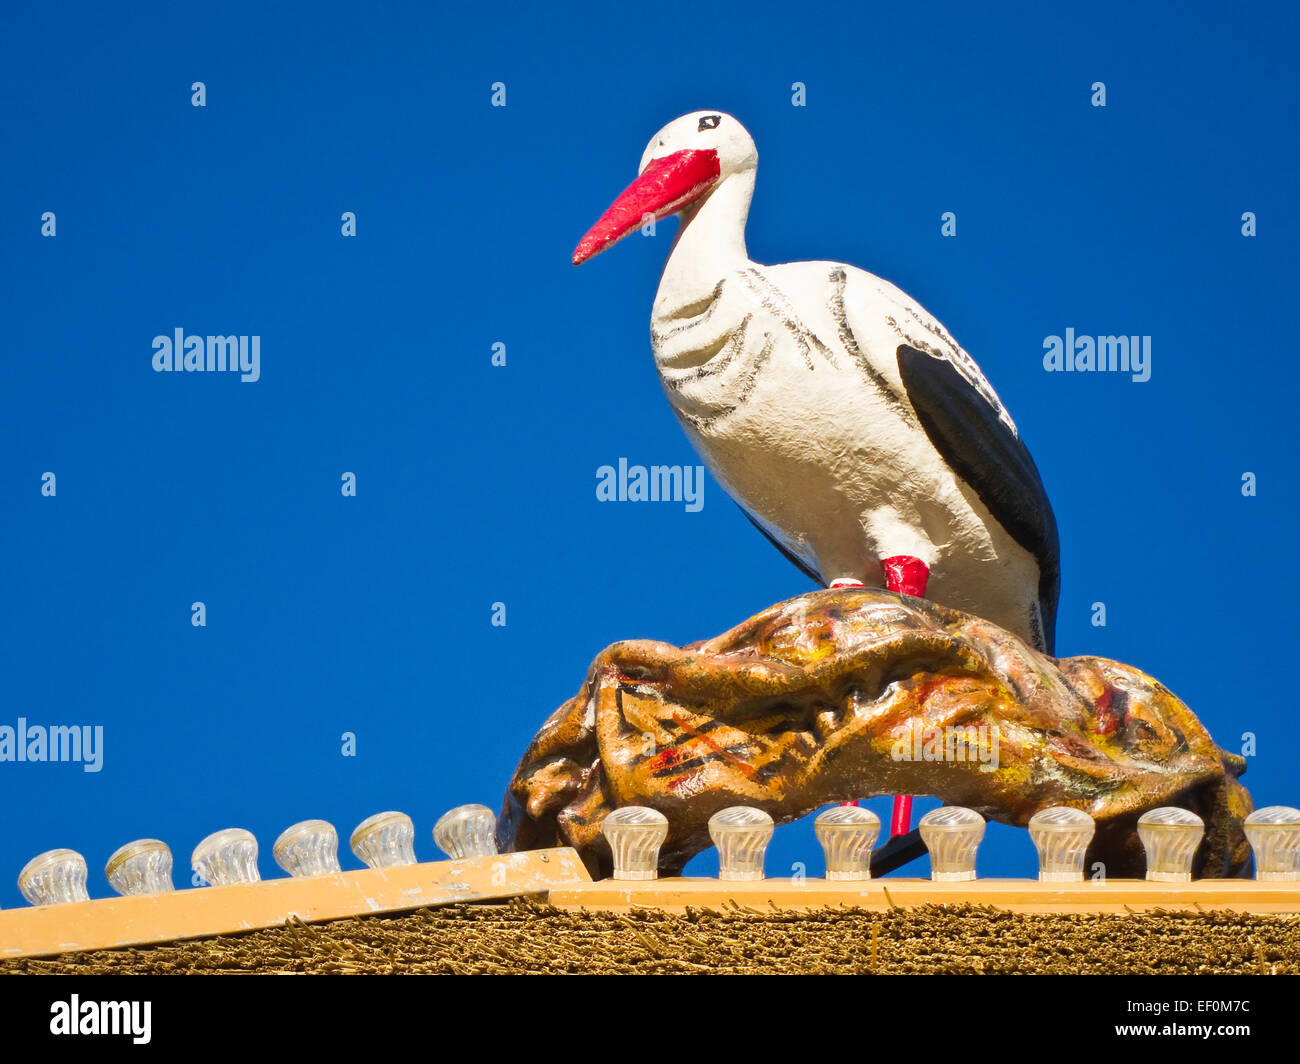 A stork figure on a roof. - Stock Image